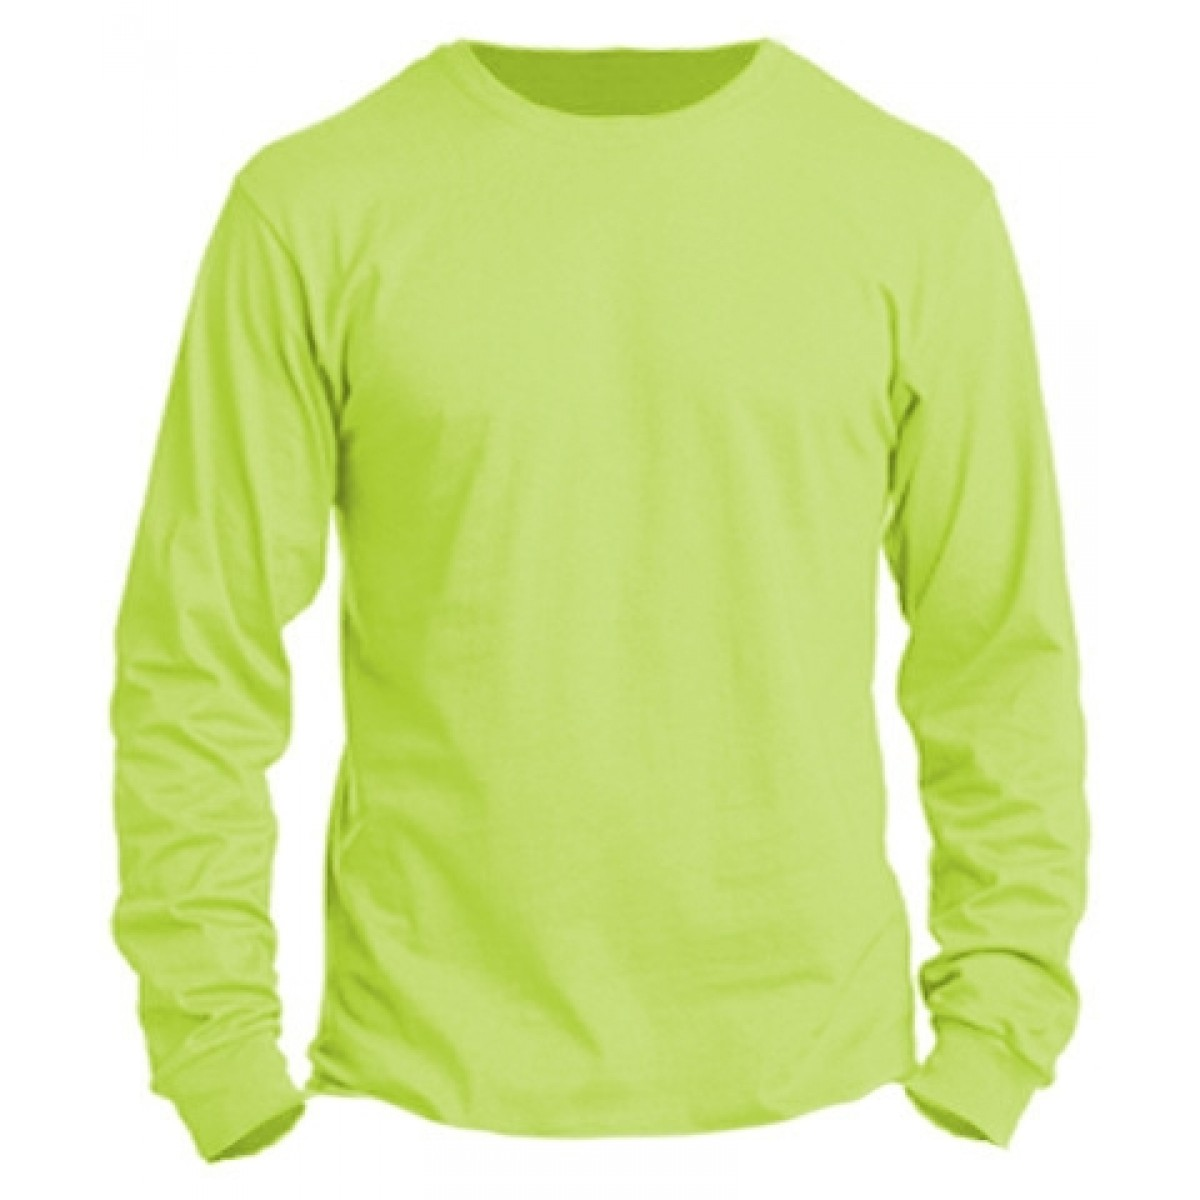 Basic Long Sleeve Crew Neck -Neon Green-S